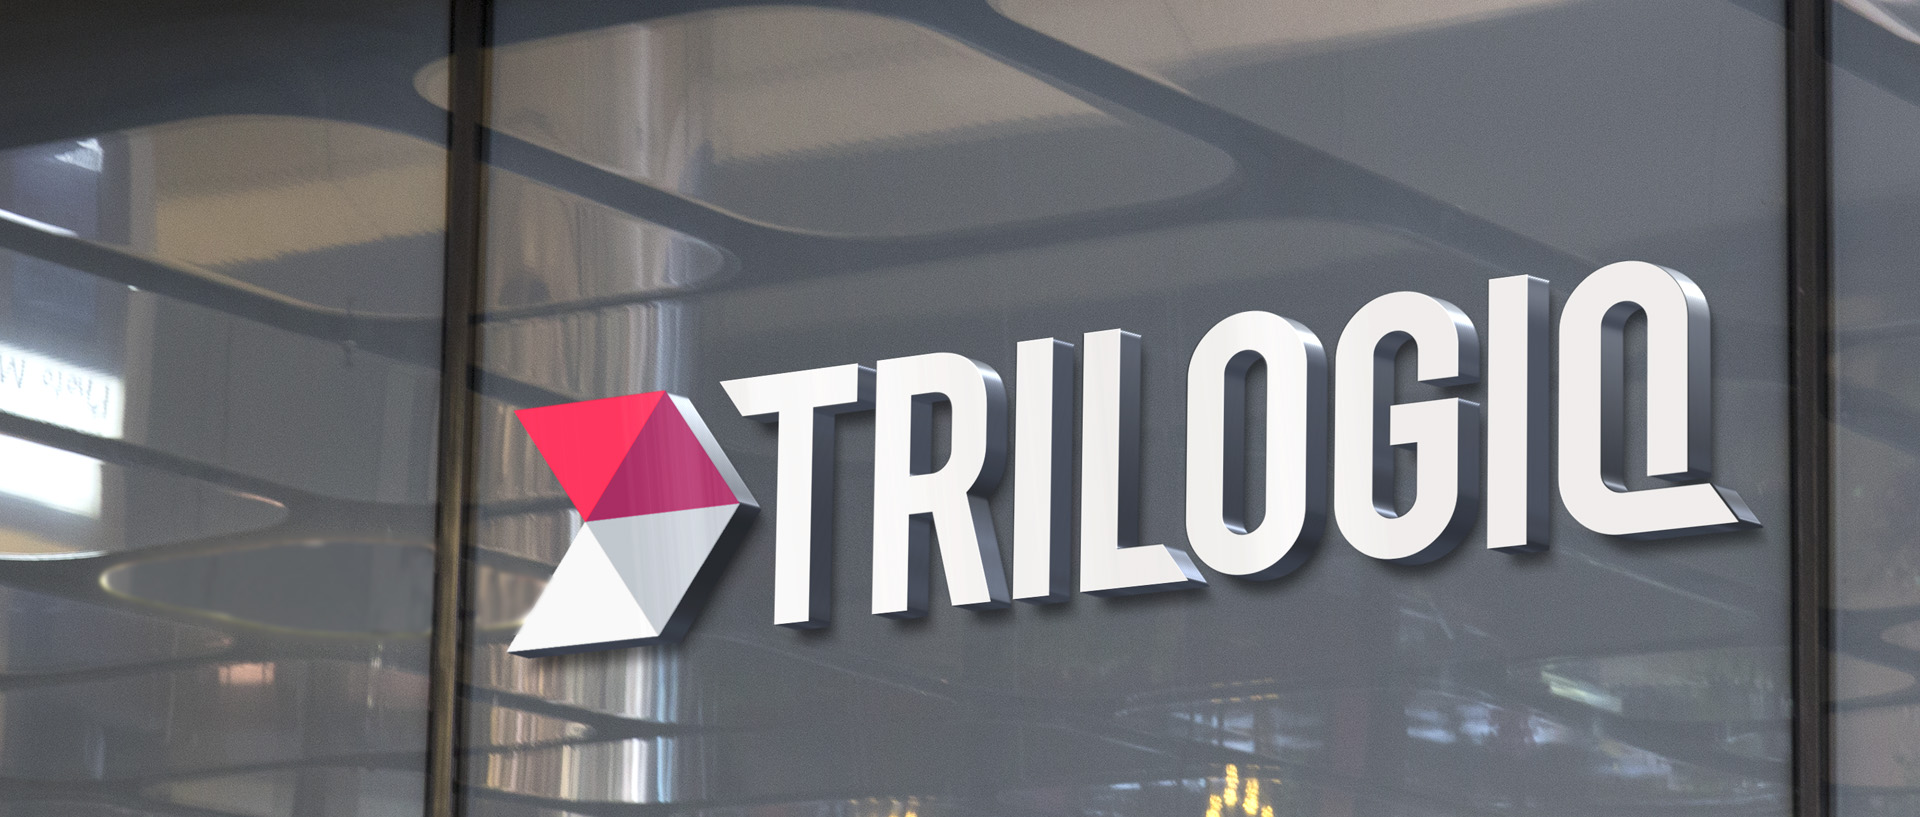 trilogiq_sign